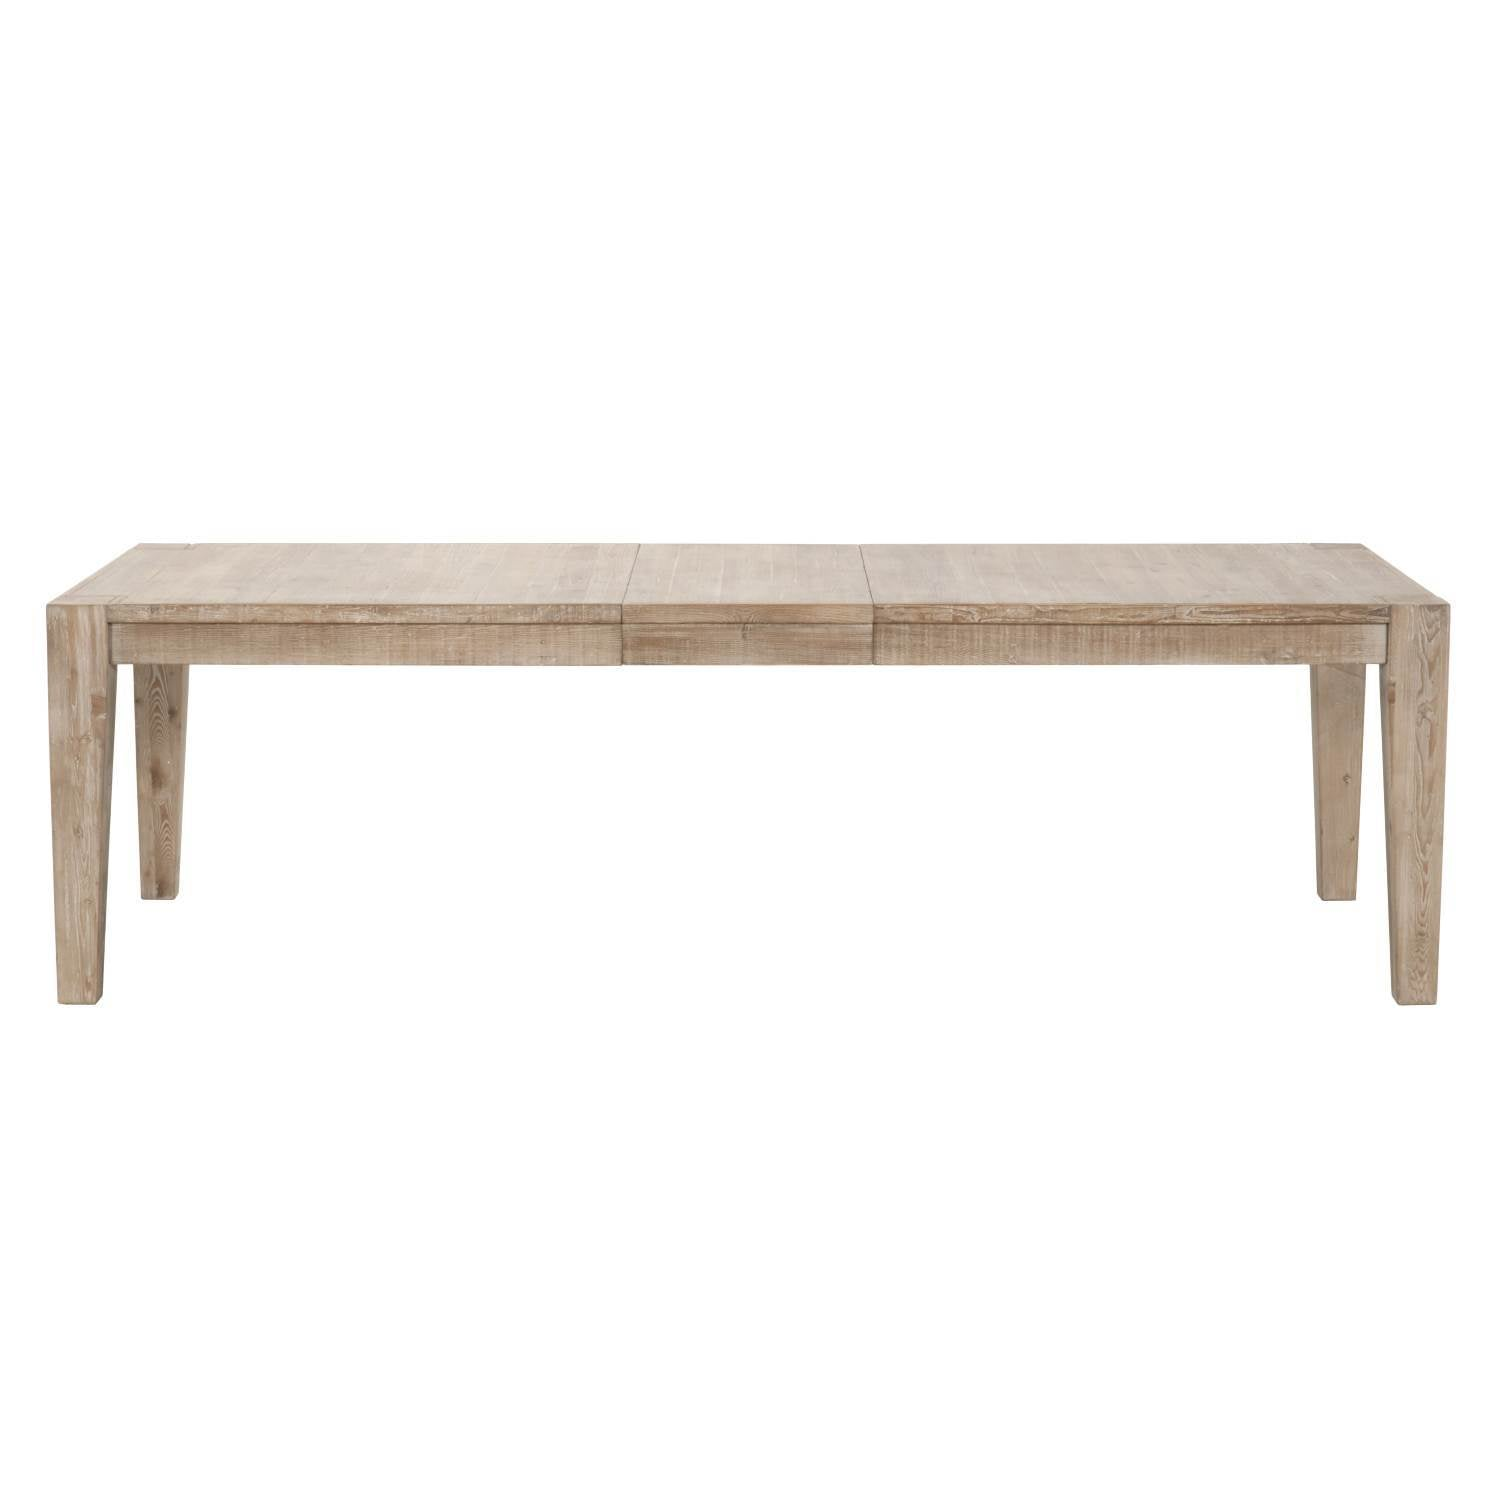 Canal Extension Dining Table in Smoke Gray Pine